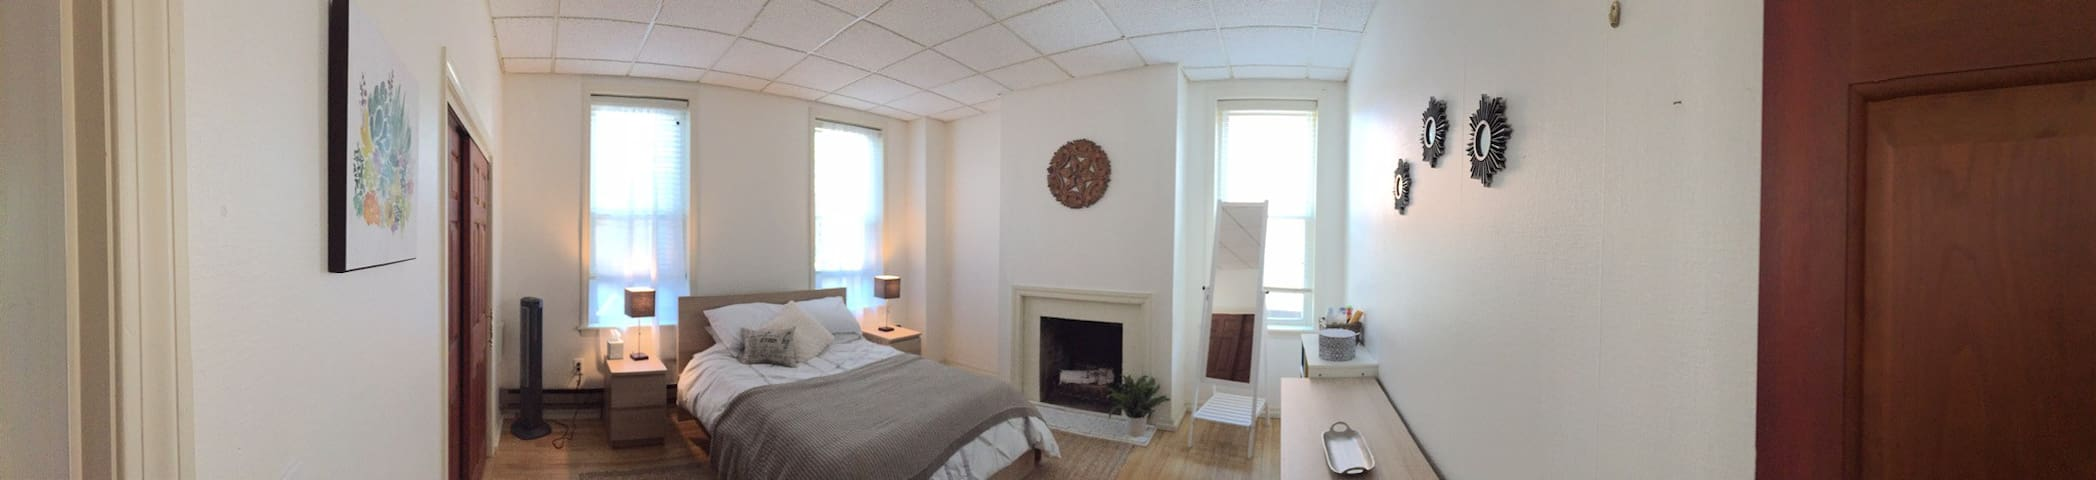 Downtown Apartment, Walk to Amherst College, UMASS - Amherst - Appartement